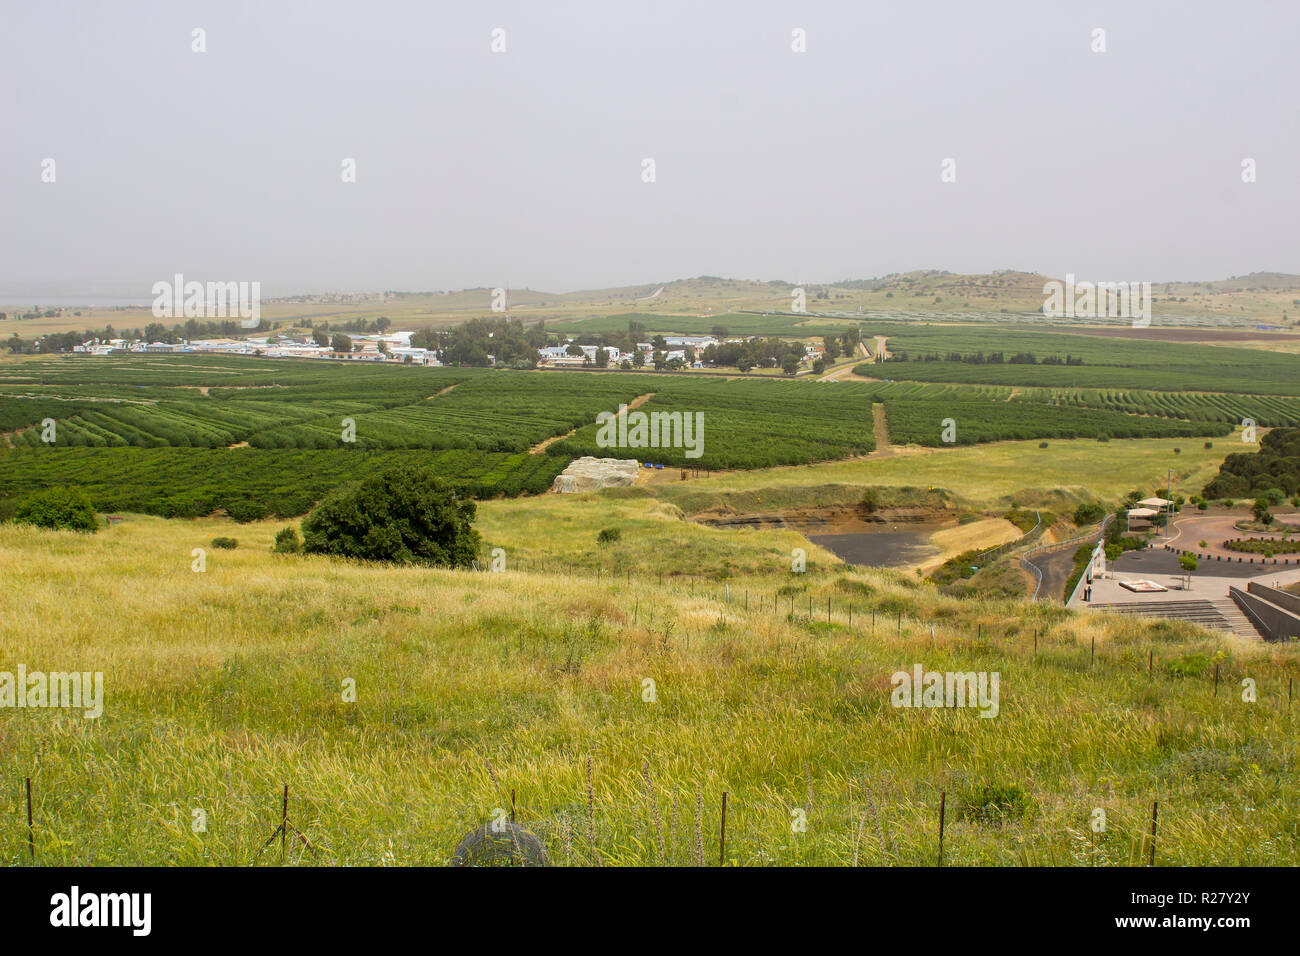 4 May 2018 Syrian real estate close to the Israeli border as seen from the Northern Golan Heights in Northe East Israel - Stock Image